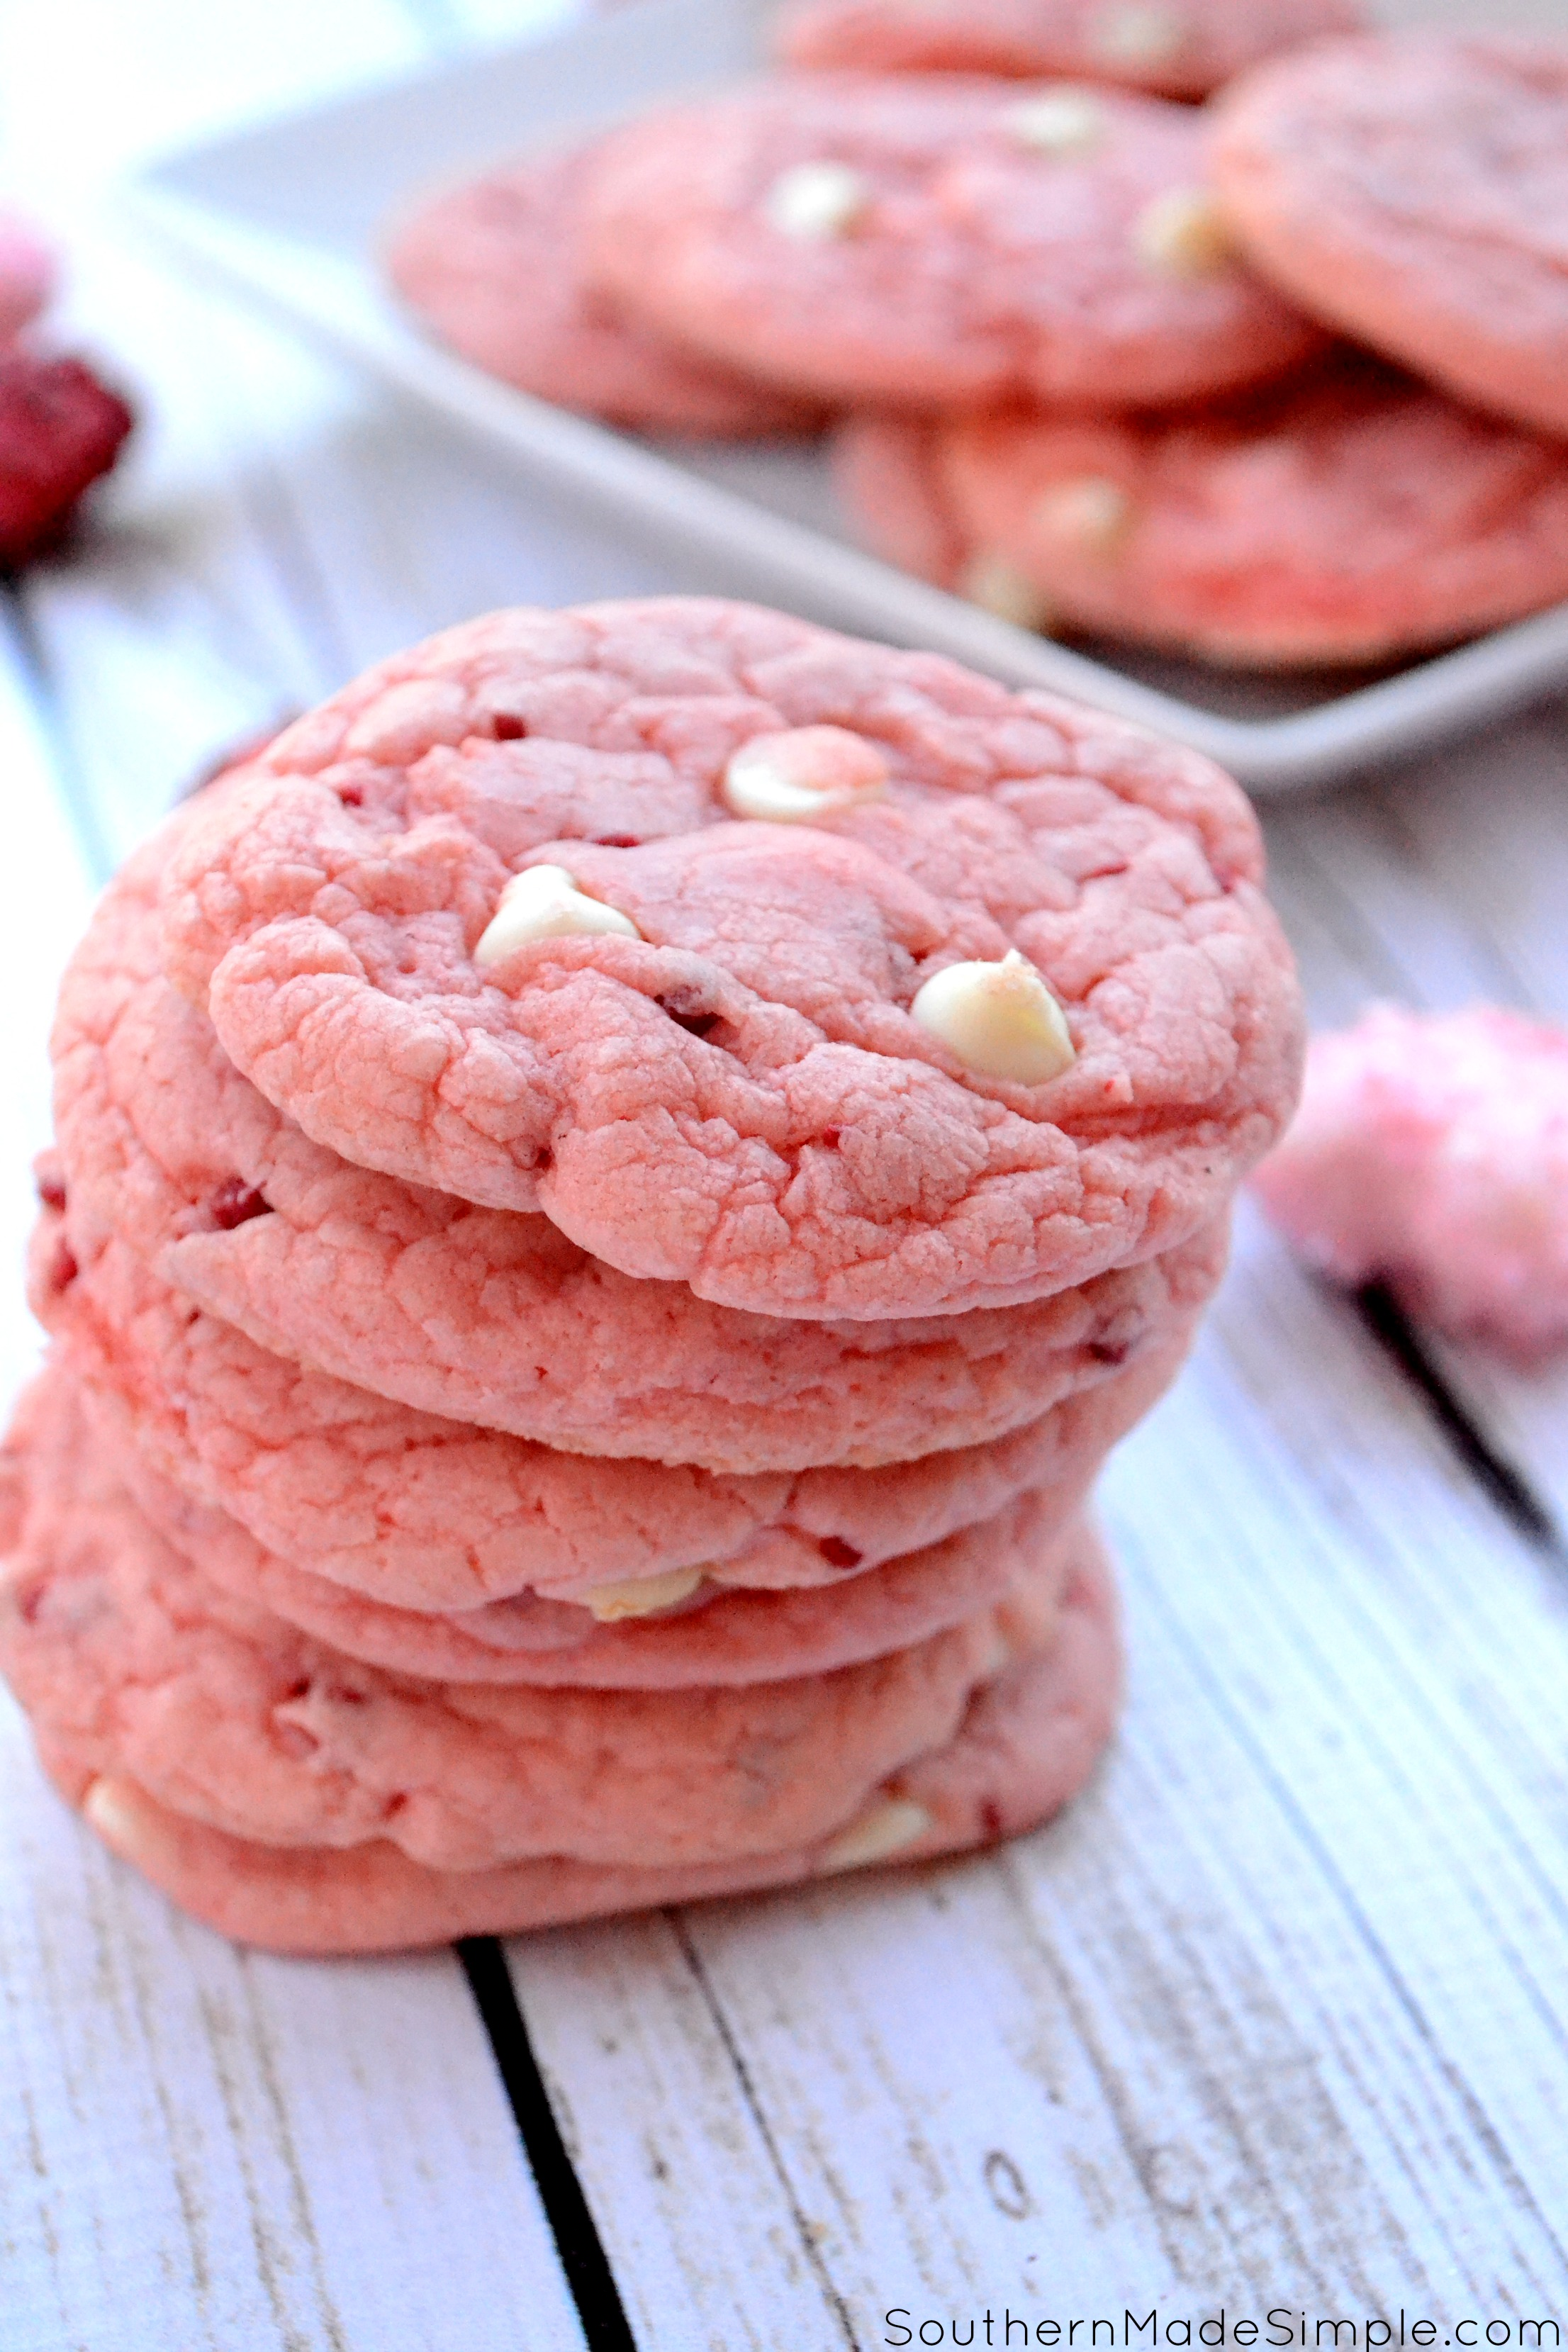 Strawberry Milkshake Cookies - These easy strawberry and white chocolate chip cookies taste just like a smooth strawberry shake, and are perfect for Valentine's Day!